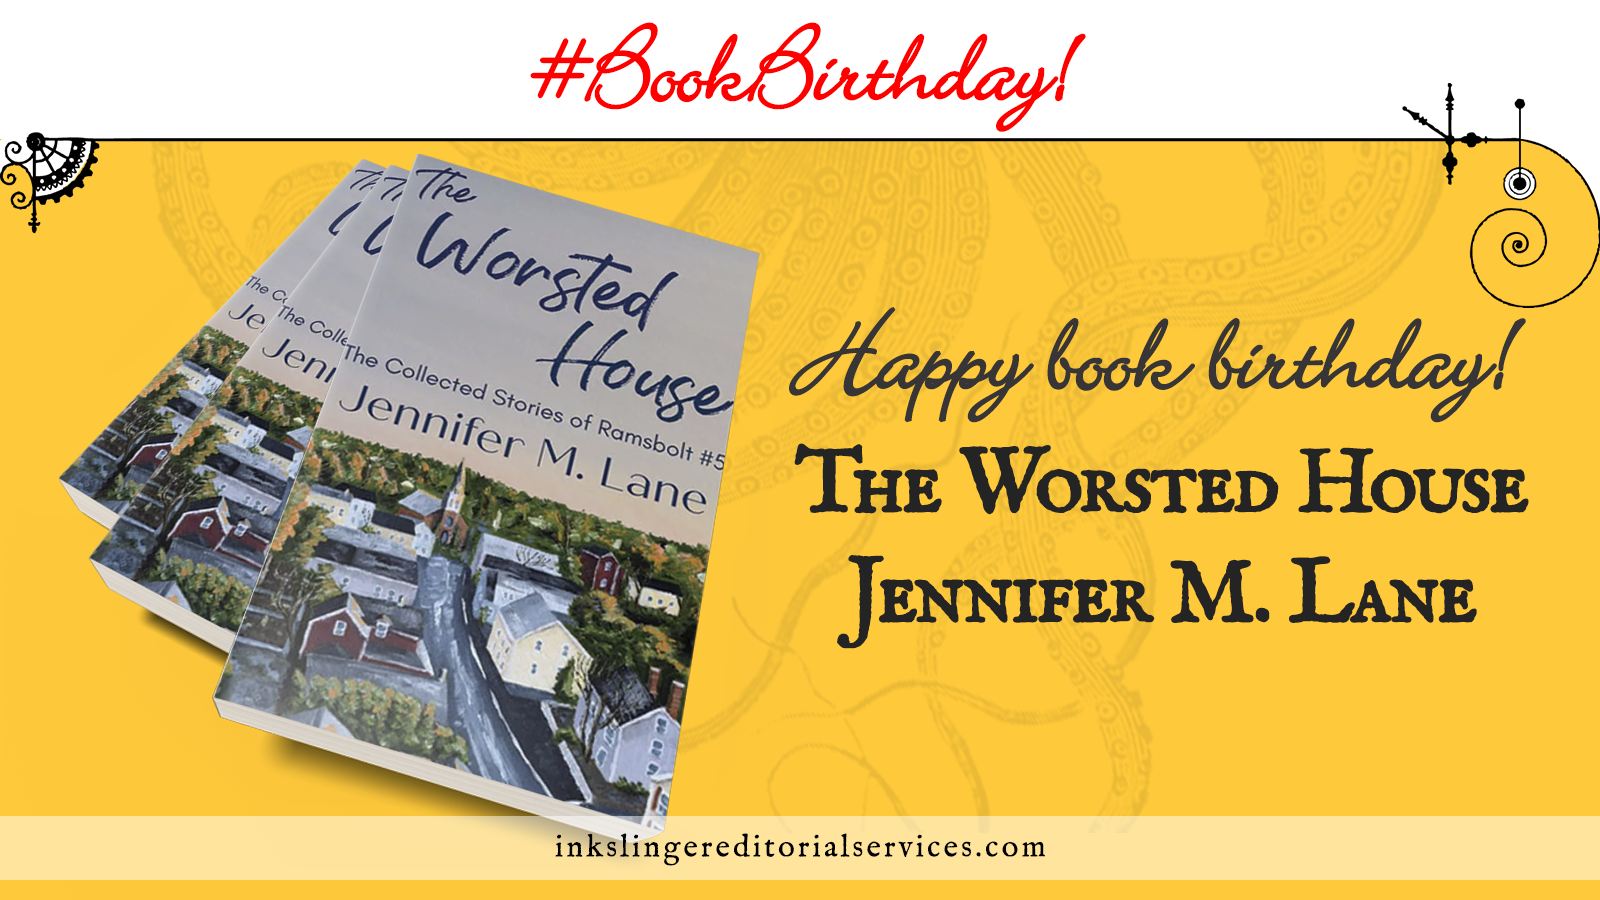 #BookBirthday! 3 copies of The Worsted House by Jennifer M. Lane are stacked over a yellow field with faded tentacles. www.inkslingereditiorialservices.com is written along the bottom.